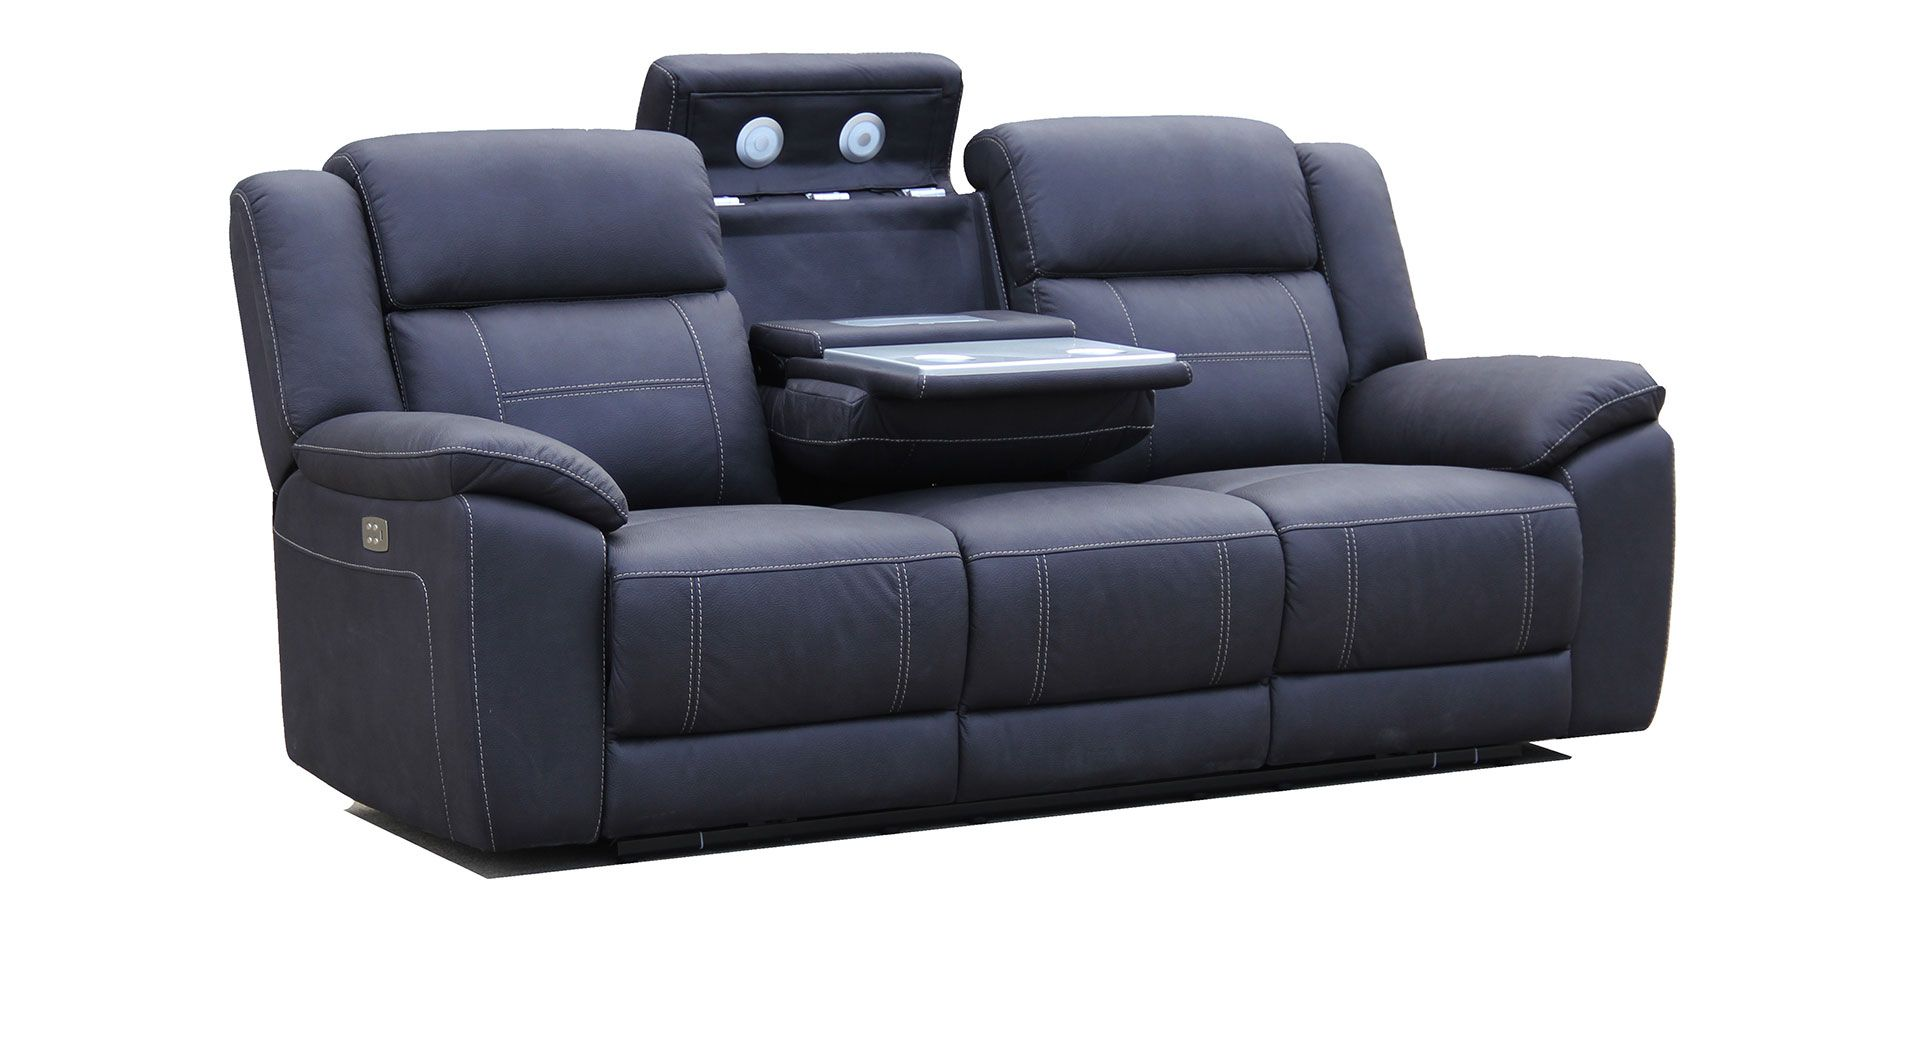 Apollo Mkii 3 Seater With Electric Recliners Plus E Station